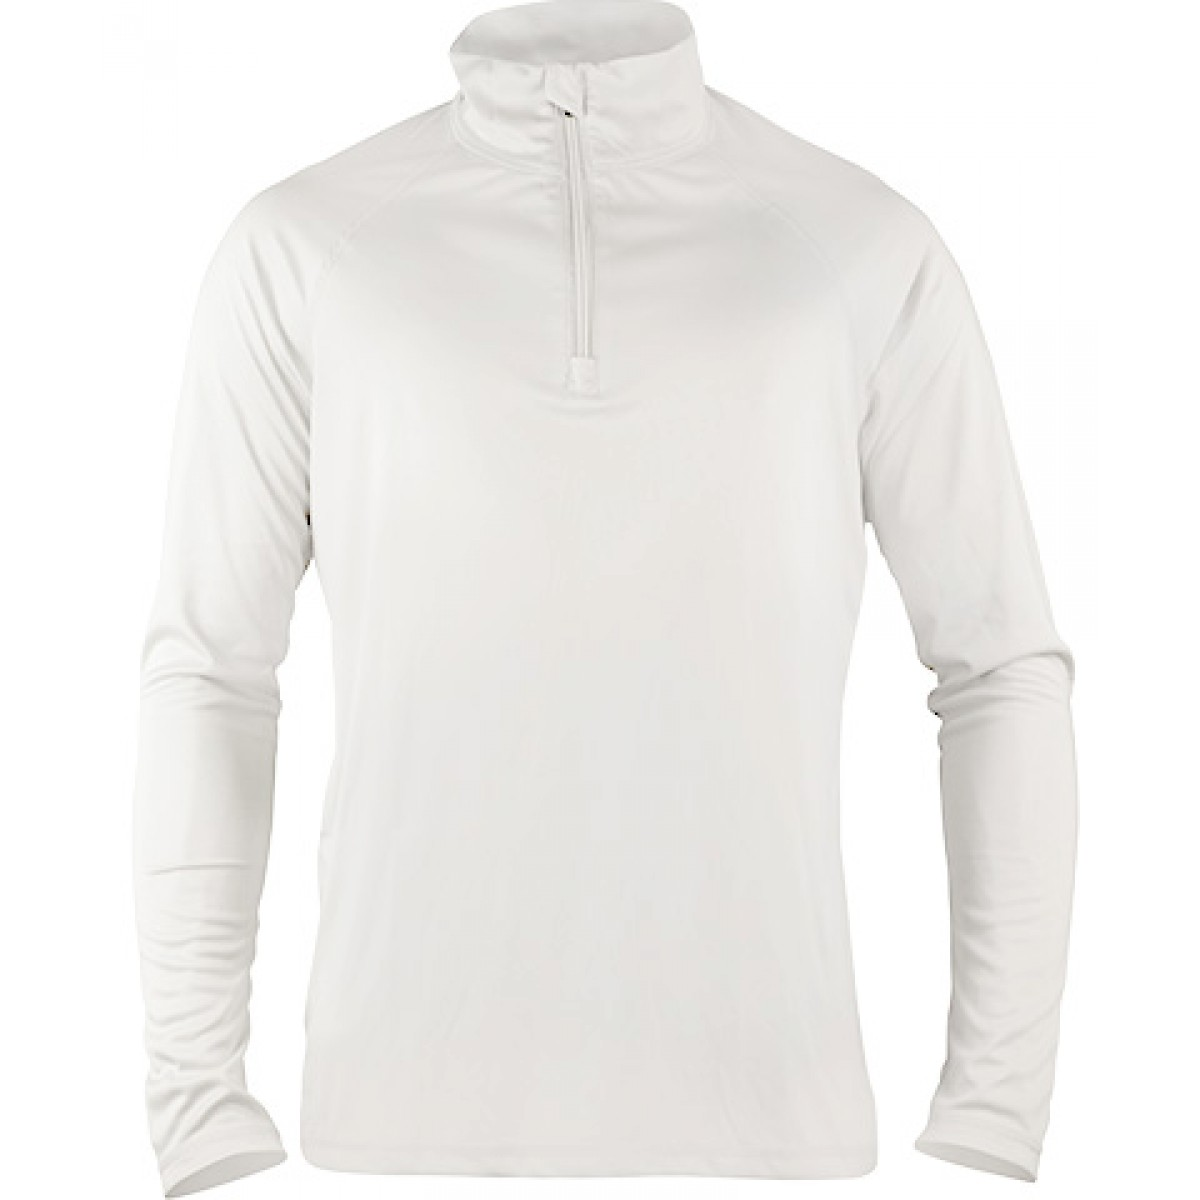 Quarter-Zip Lightweight Pullover-White-L